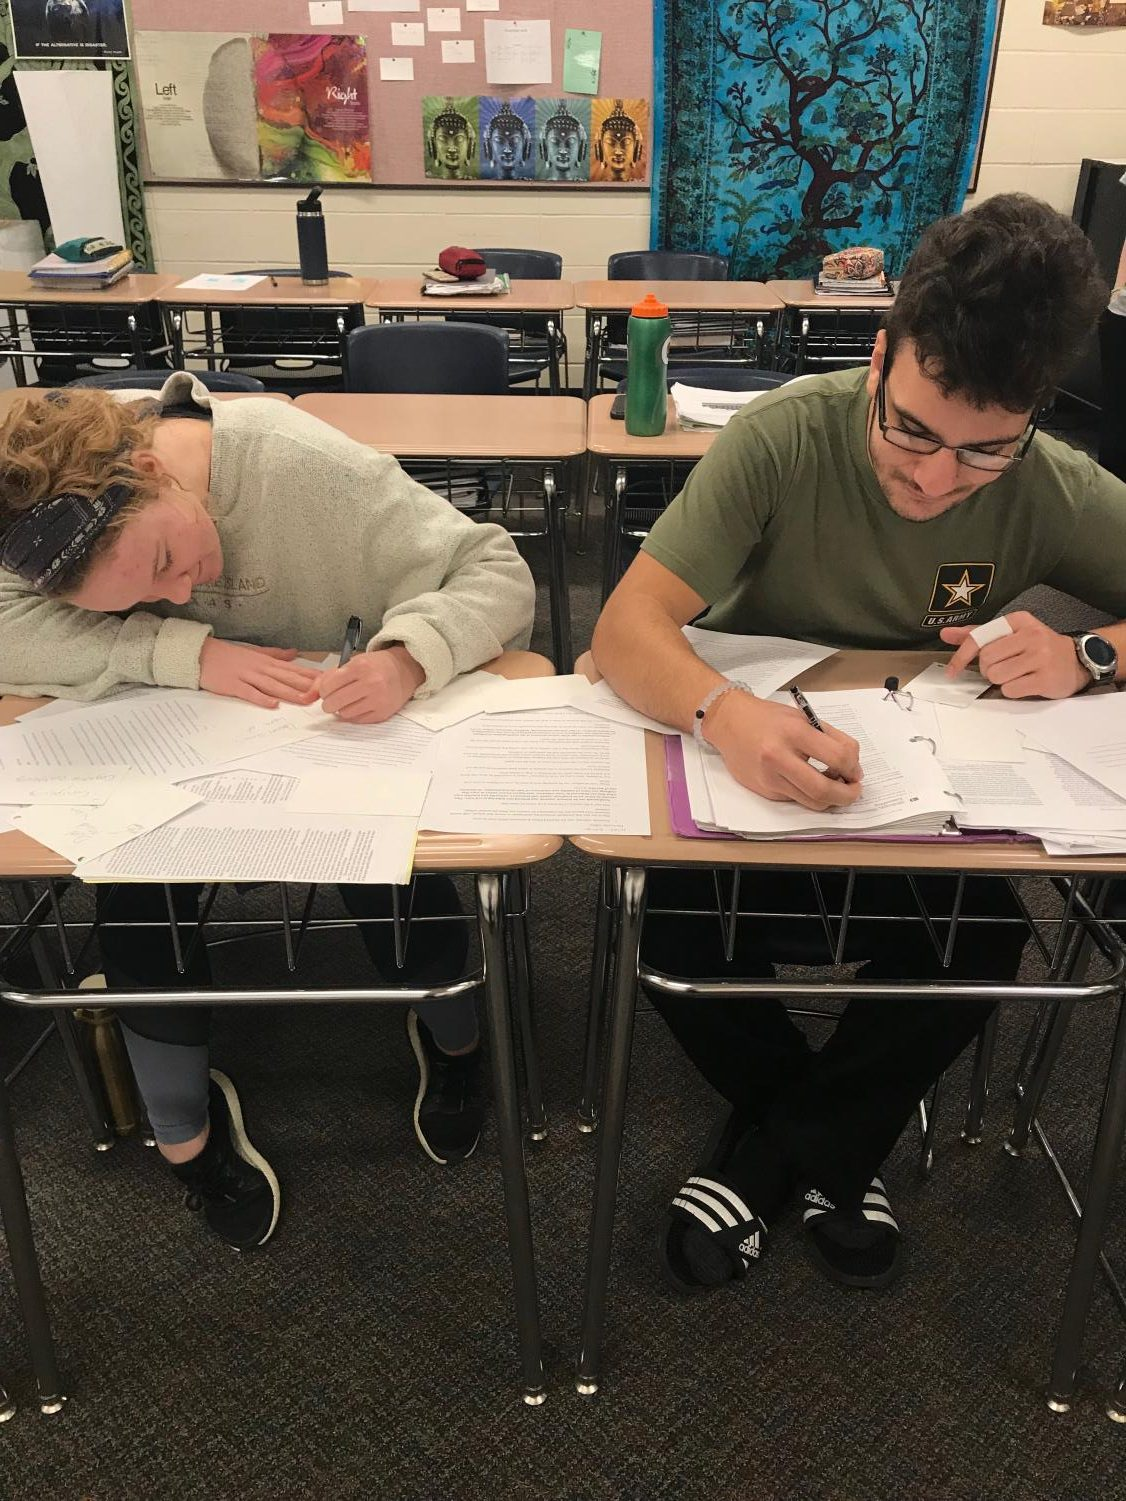 Gui Pinho and Libby Staver, seniors, working on homework for their dual credit psychology class.